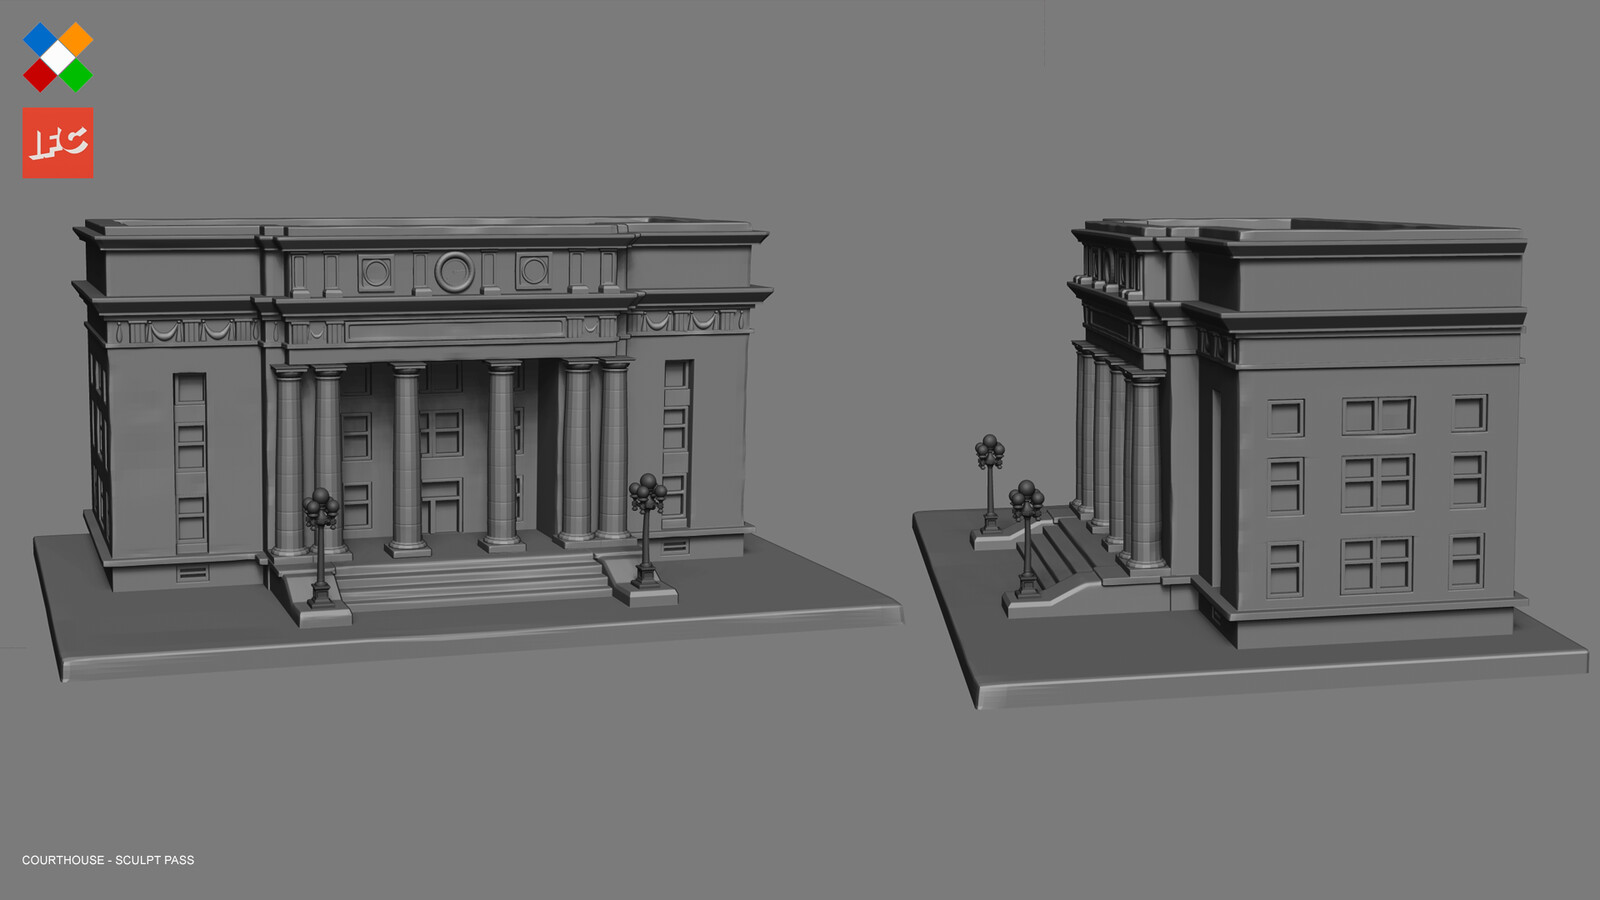 Imperfections sculpt pass done for the Courthouse model